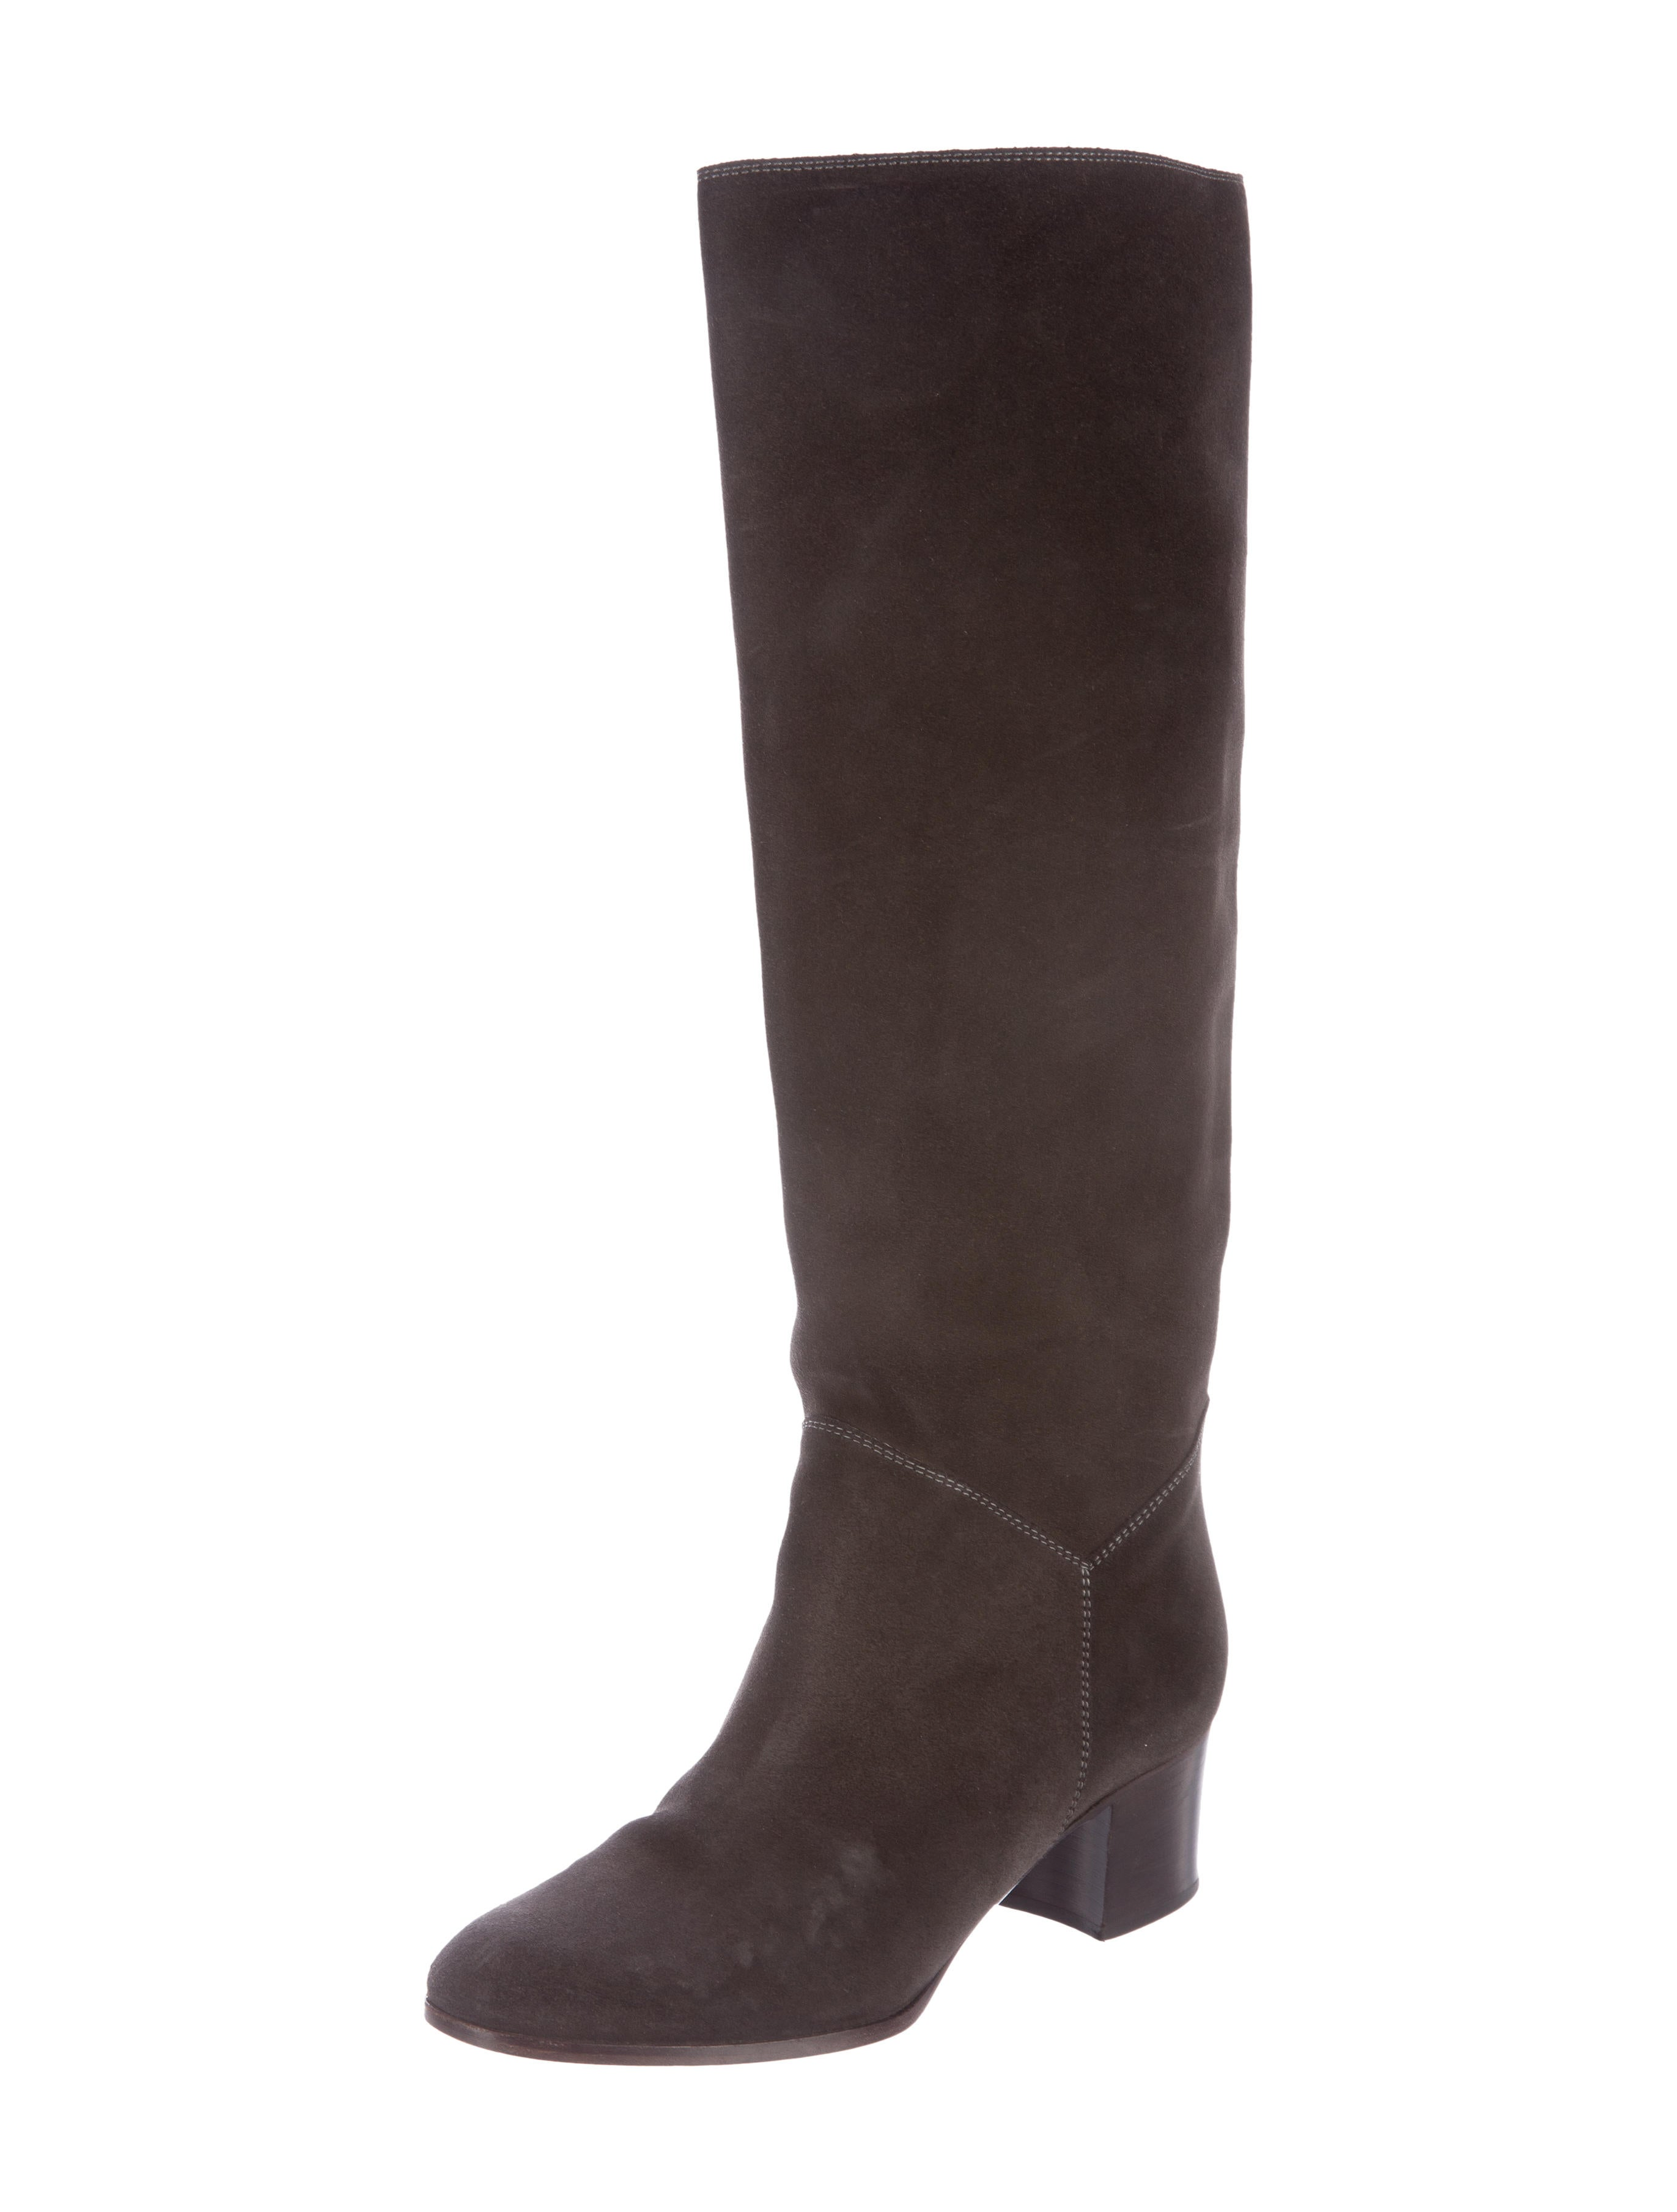 chanel suede knee high boots shoes cha156768 the